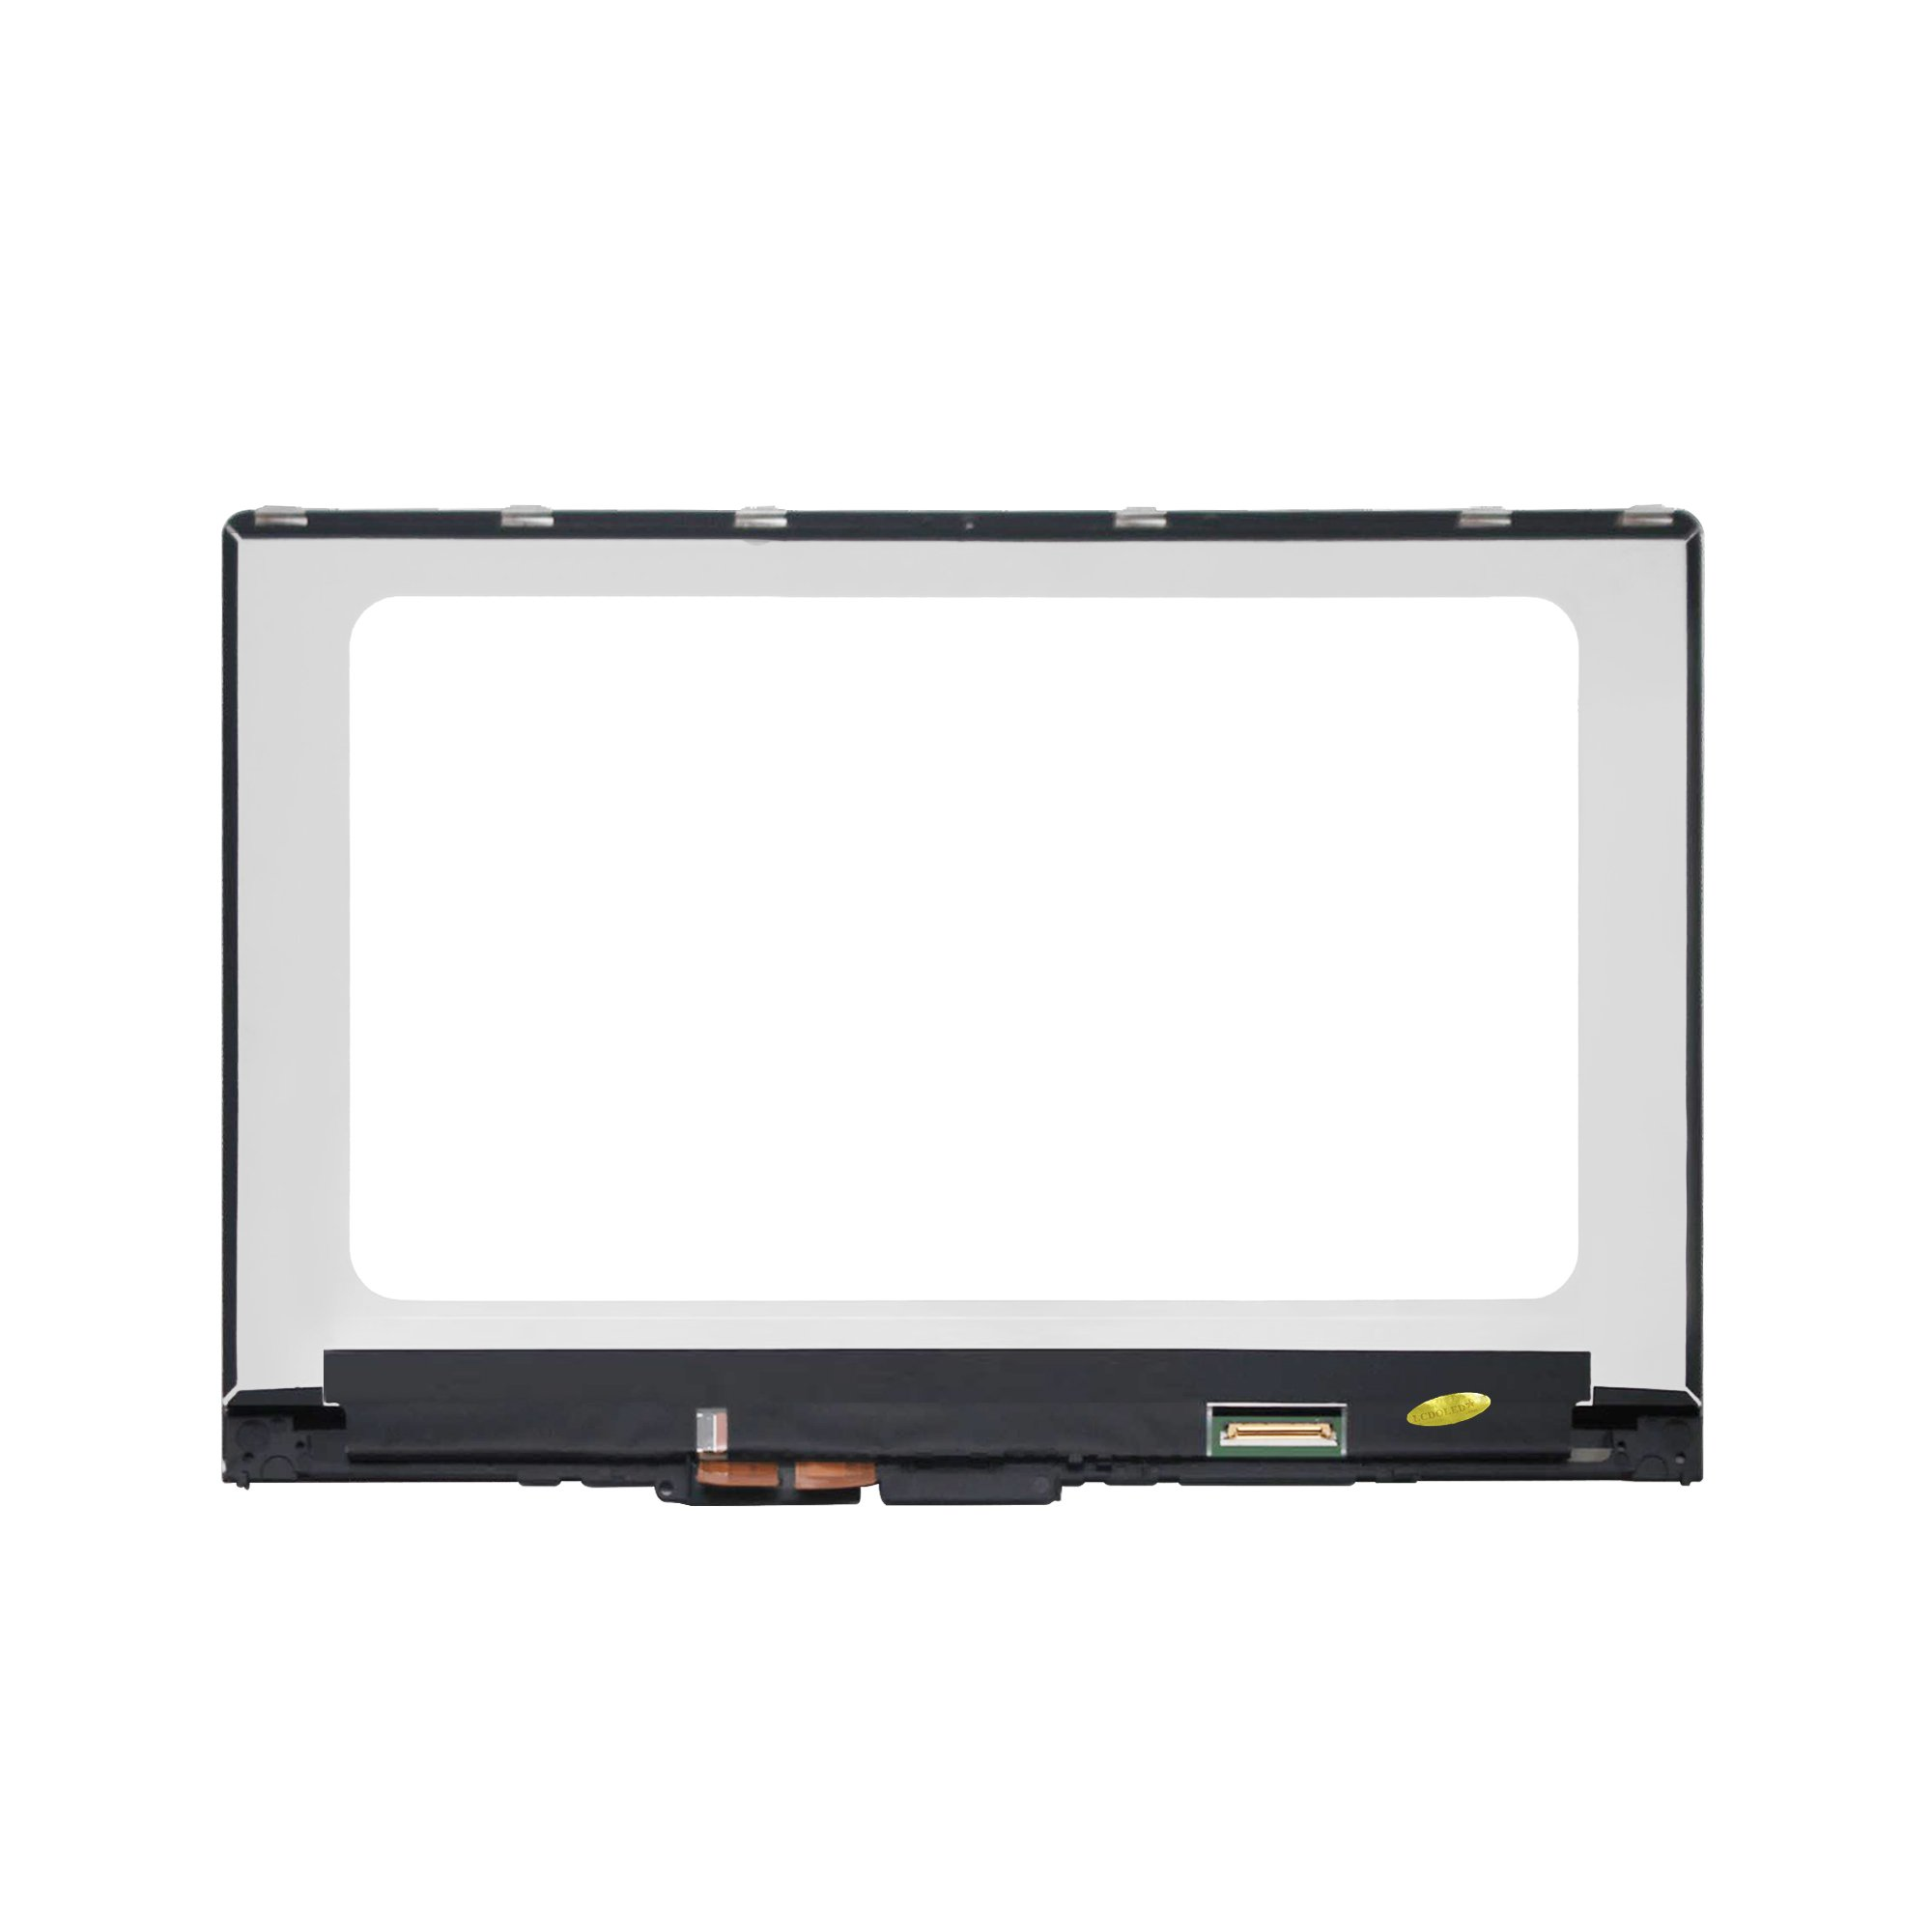 LCDOLED 15.6 inch FullHD 1080P N156HCA-EA1 IPS LCD Display Touch Screen Digitizer Assembly + Bezel for Lenovo Yoga 710 710-15ISK 710-15IKB 80U0 80V5 5TD50K85364 5D10K81093 (NOT for Screen LP156WFA) by LCDOLED (Image #2)